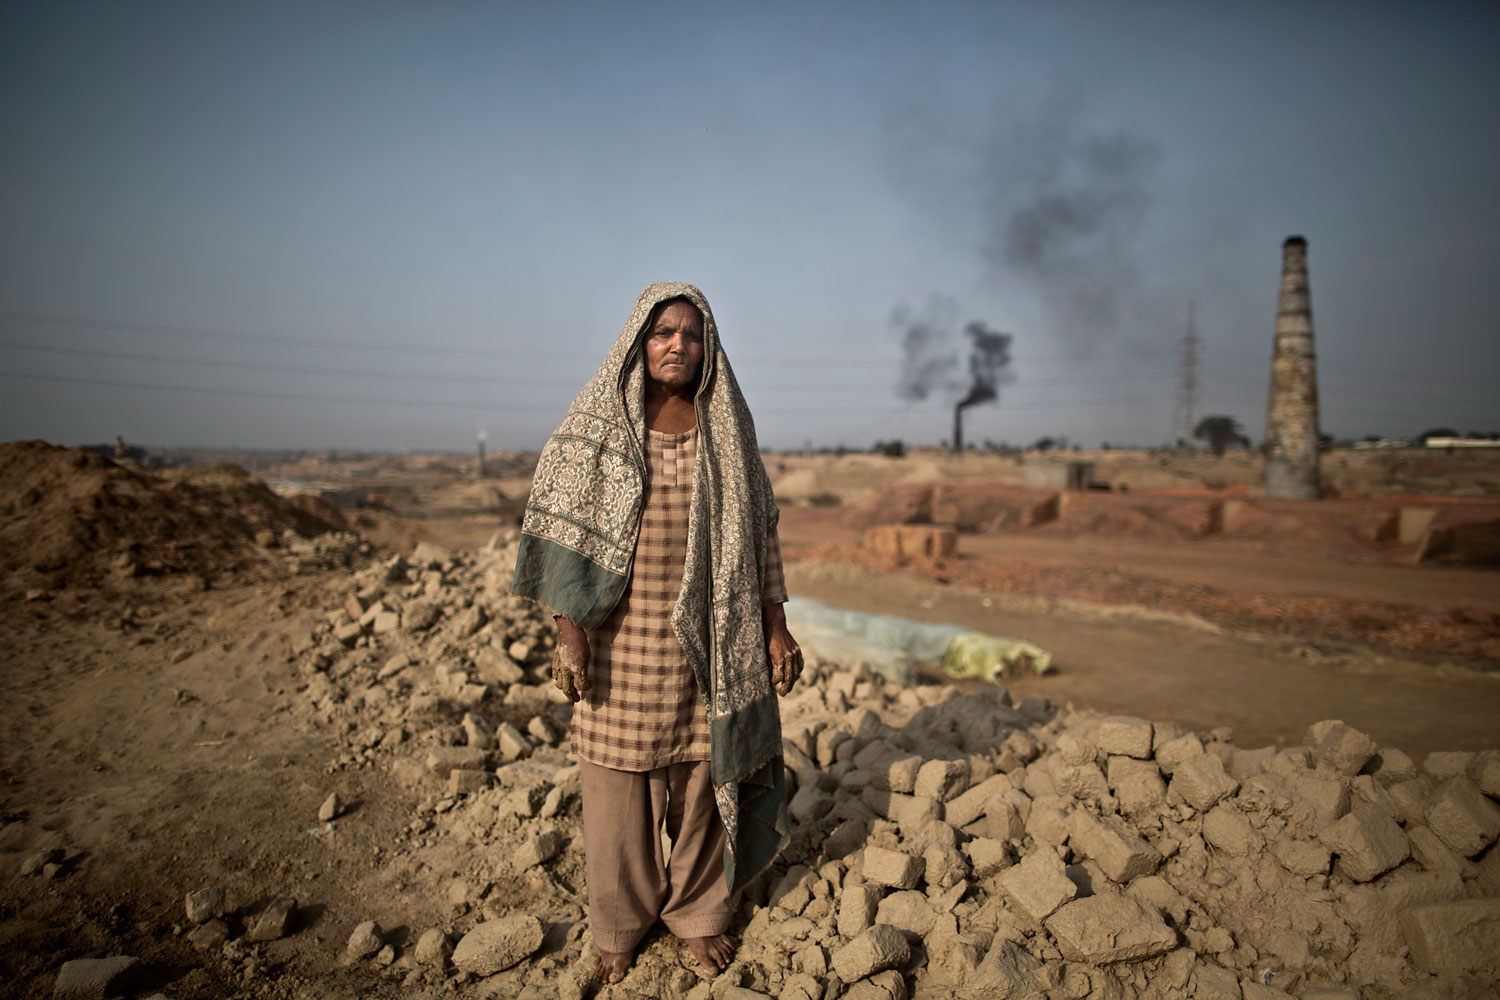 Emna Mohammed, 65, a Pakistani brick factory worker, poses for a picture at the site of her work in Mandra, near Rawalpindi, Pakistan, March 5, 2014. Emna inherited her late husband's debt to the employer the amount of 95,000 rupees (approximately $950).